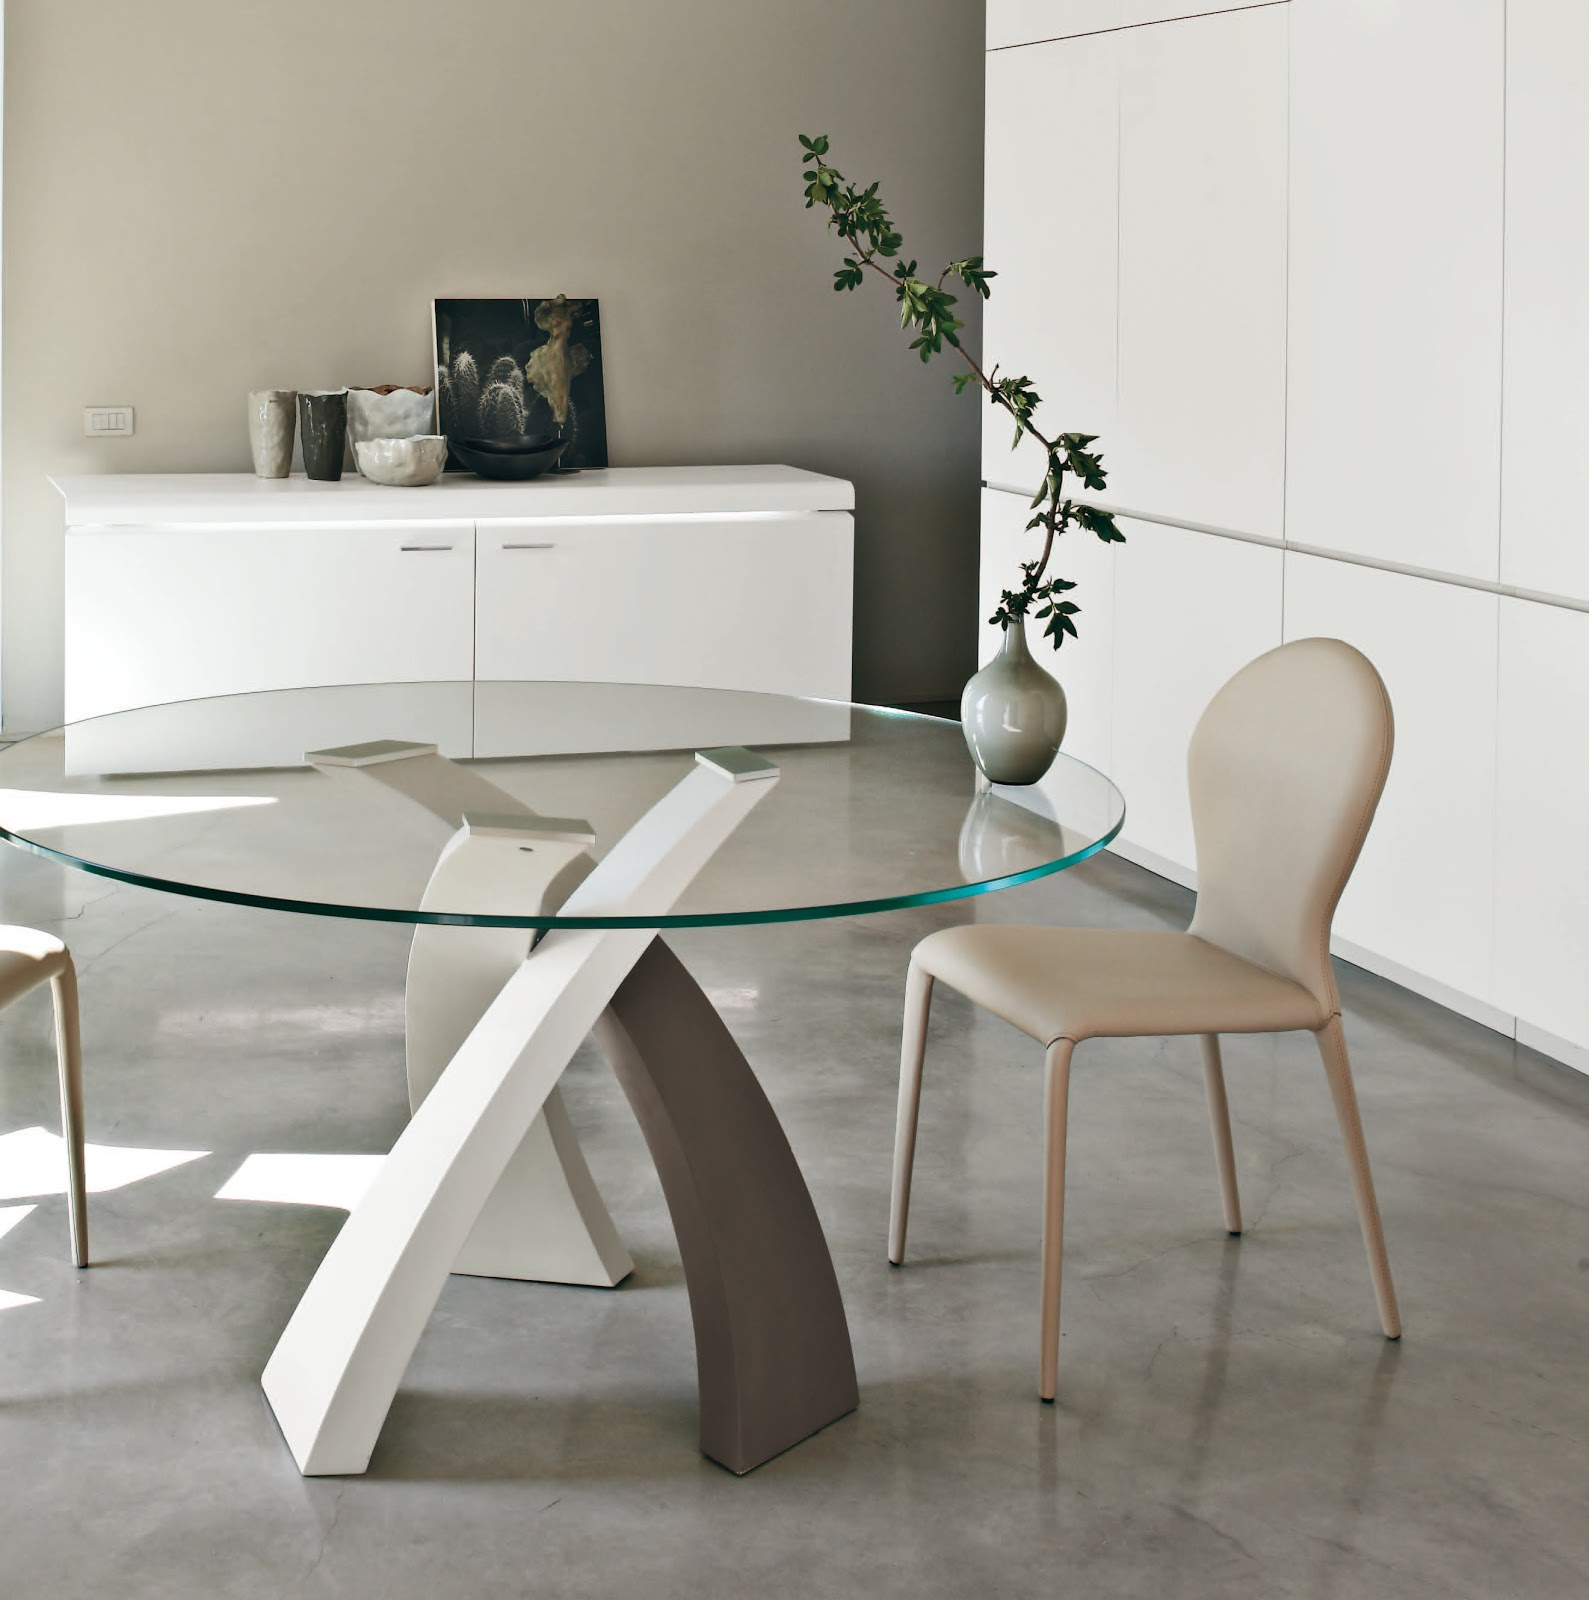 Table ronde verre design - Table ronde en verre design ...